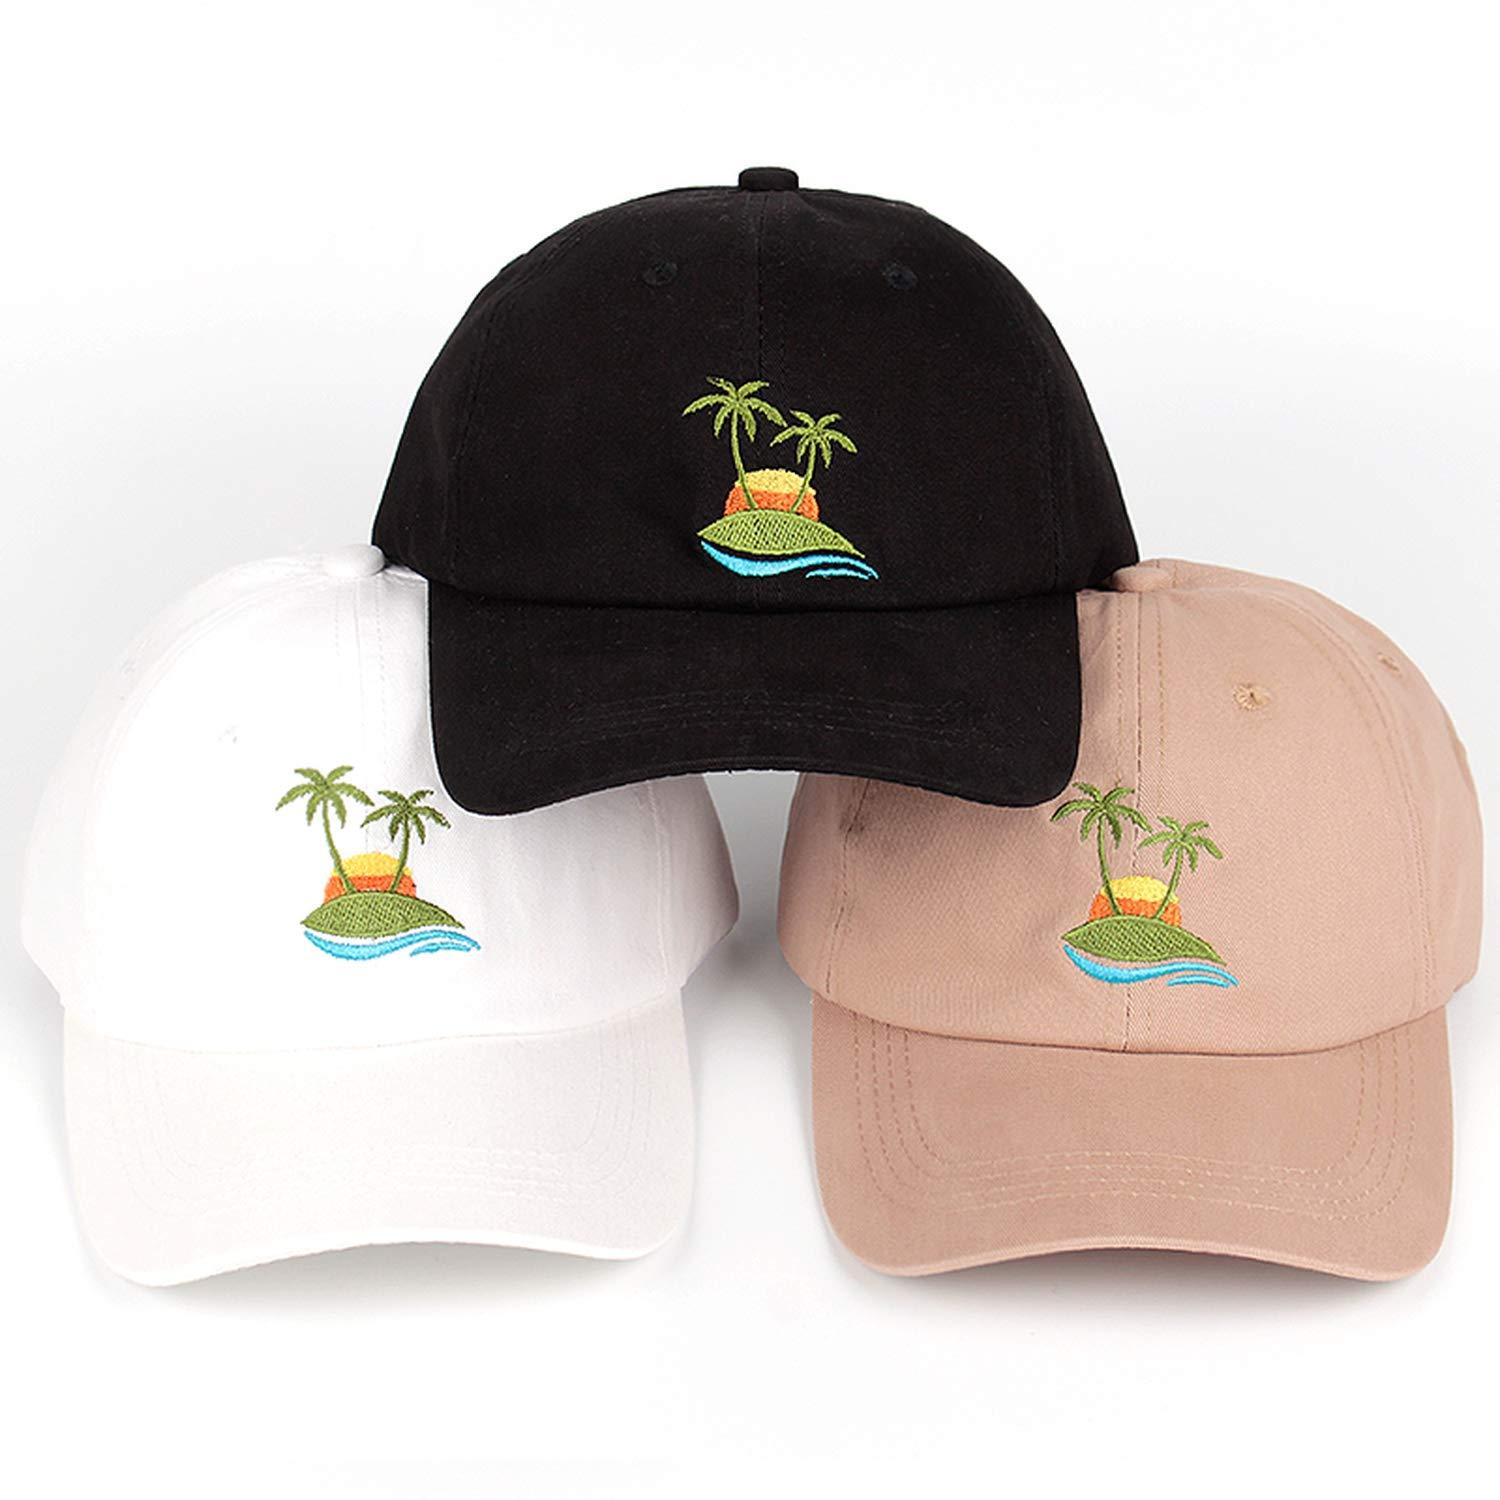 New Embroidery Palm Trees Curved Dad Hat Beach Sunrise Baseball Cap Coconut Trees Hat Strapback Hip Hop Cap